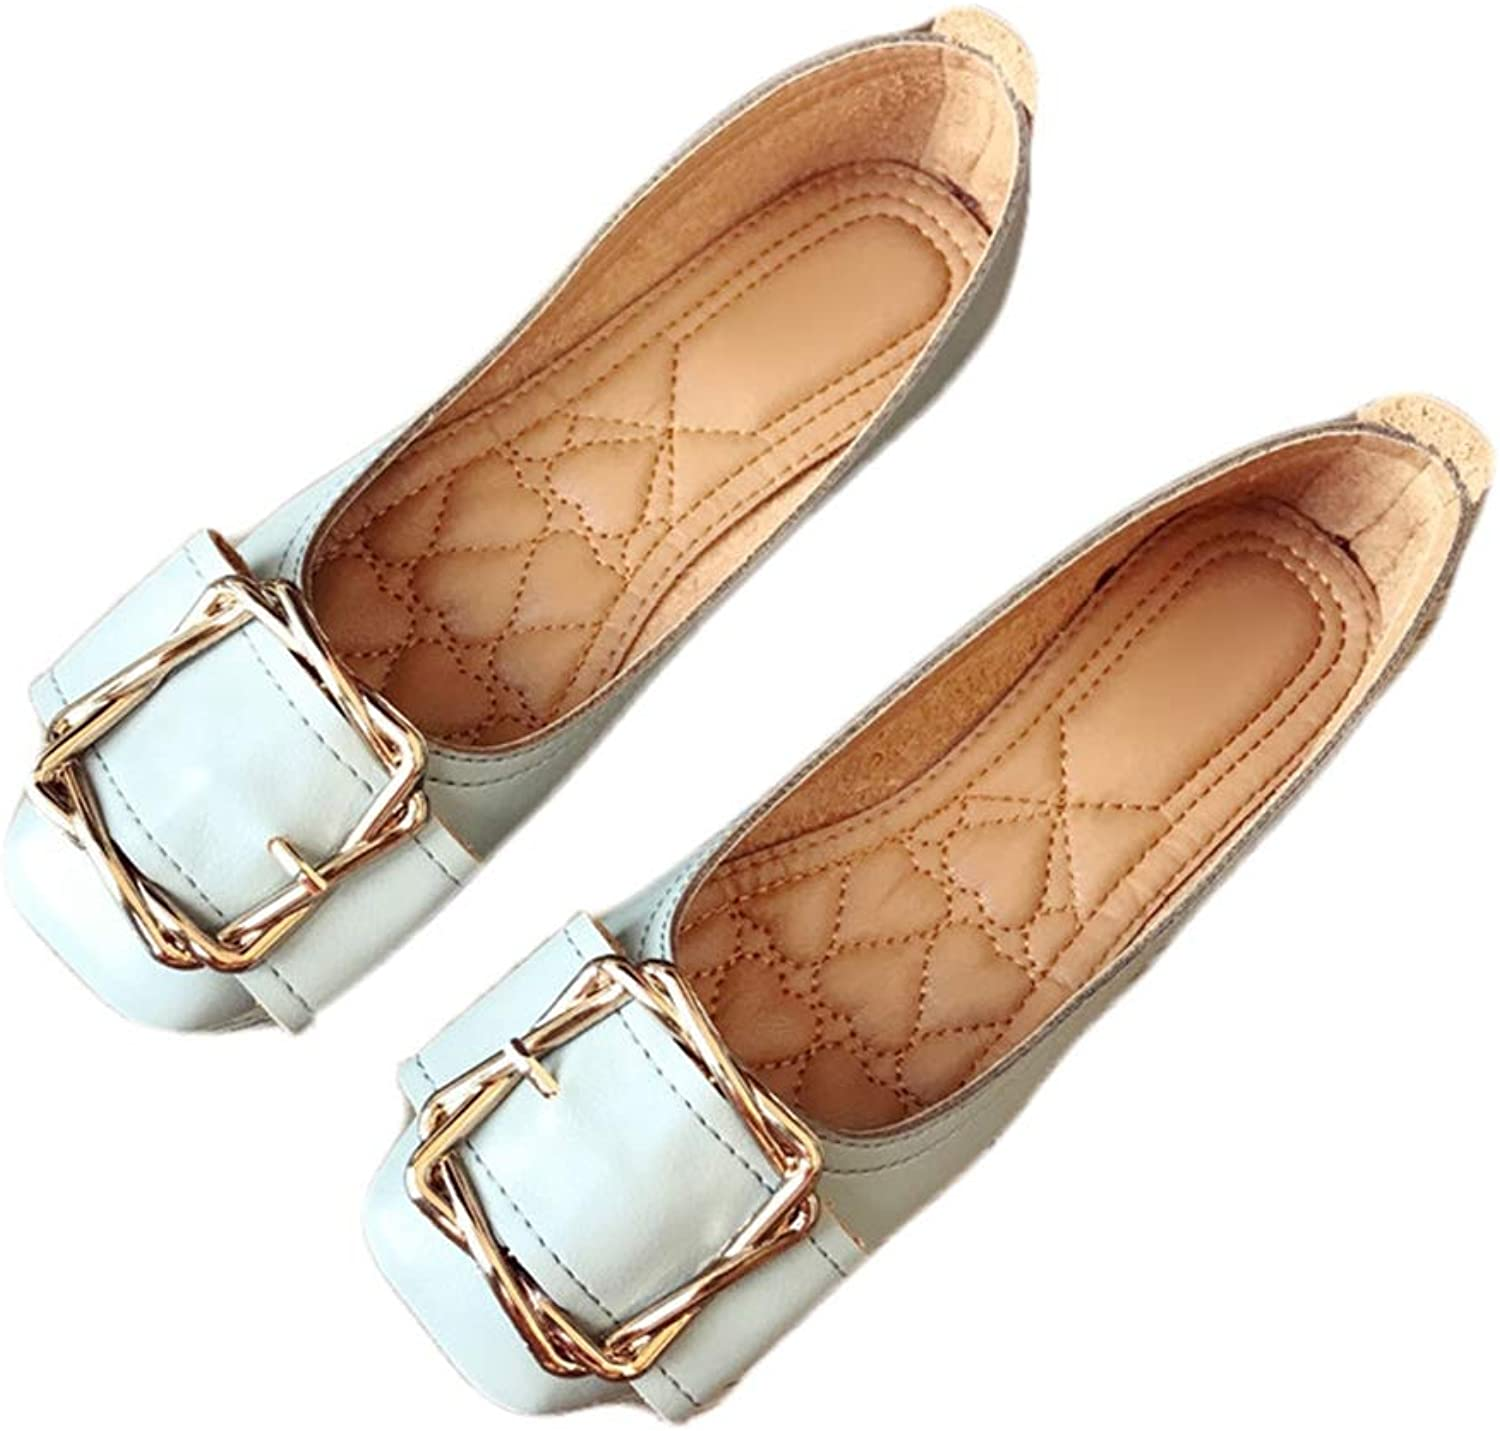 August Jim Women's Flat shoes,Round Toe Buckle Natural Soft Ballet Fashion Loafers